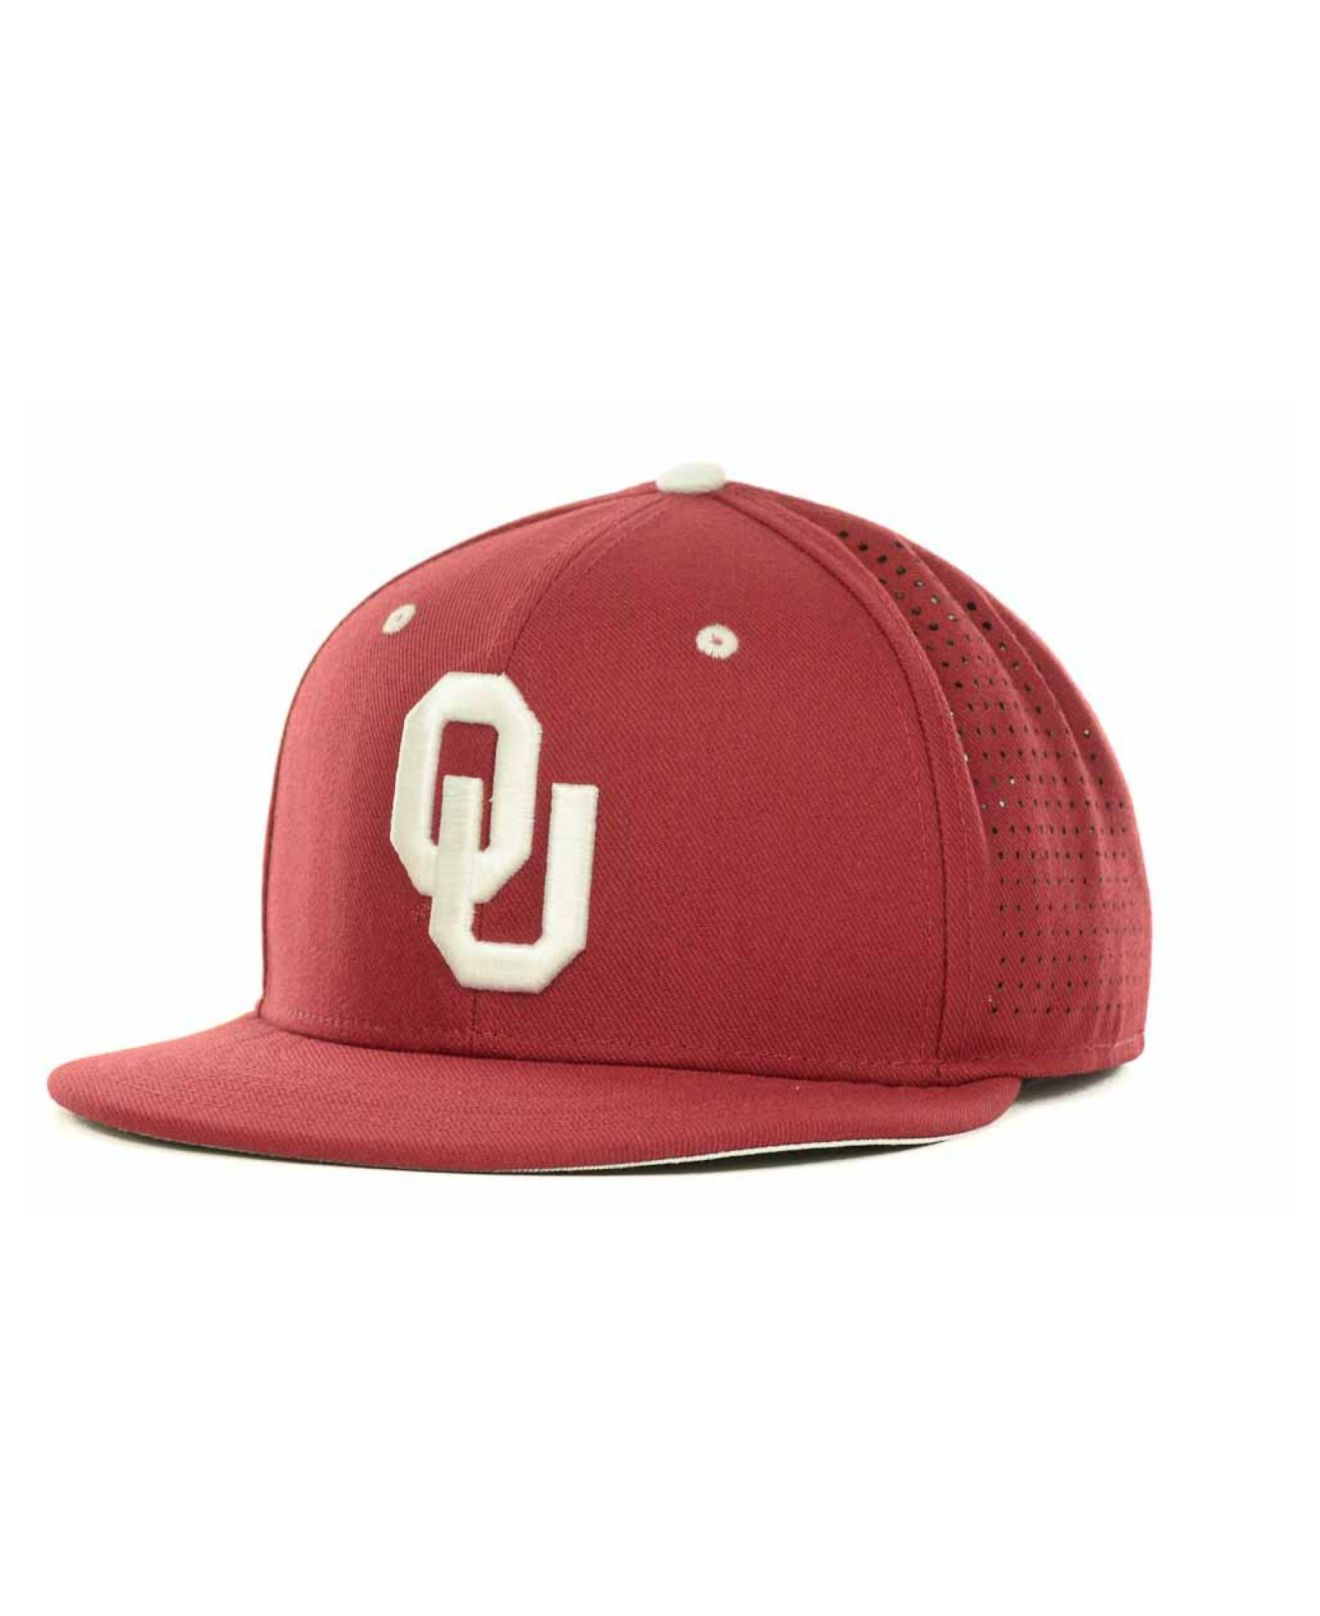 huge selection of 99401 d984d Nike Oklahoma Sooners Ncaa Authentic Vapor Fitted Cap in Red for Men ...